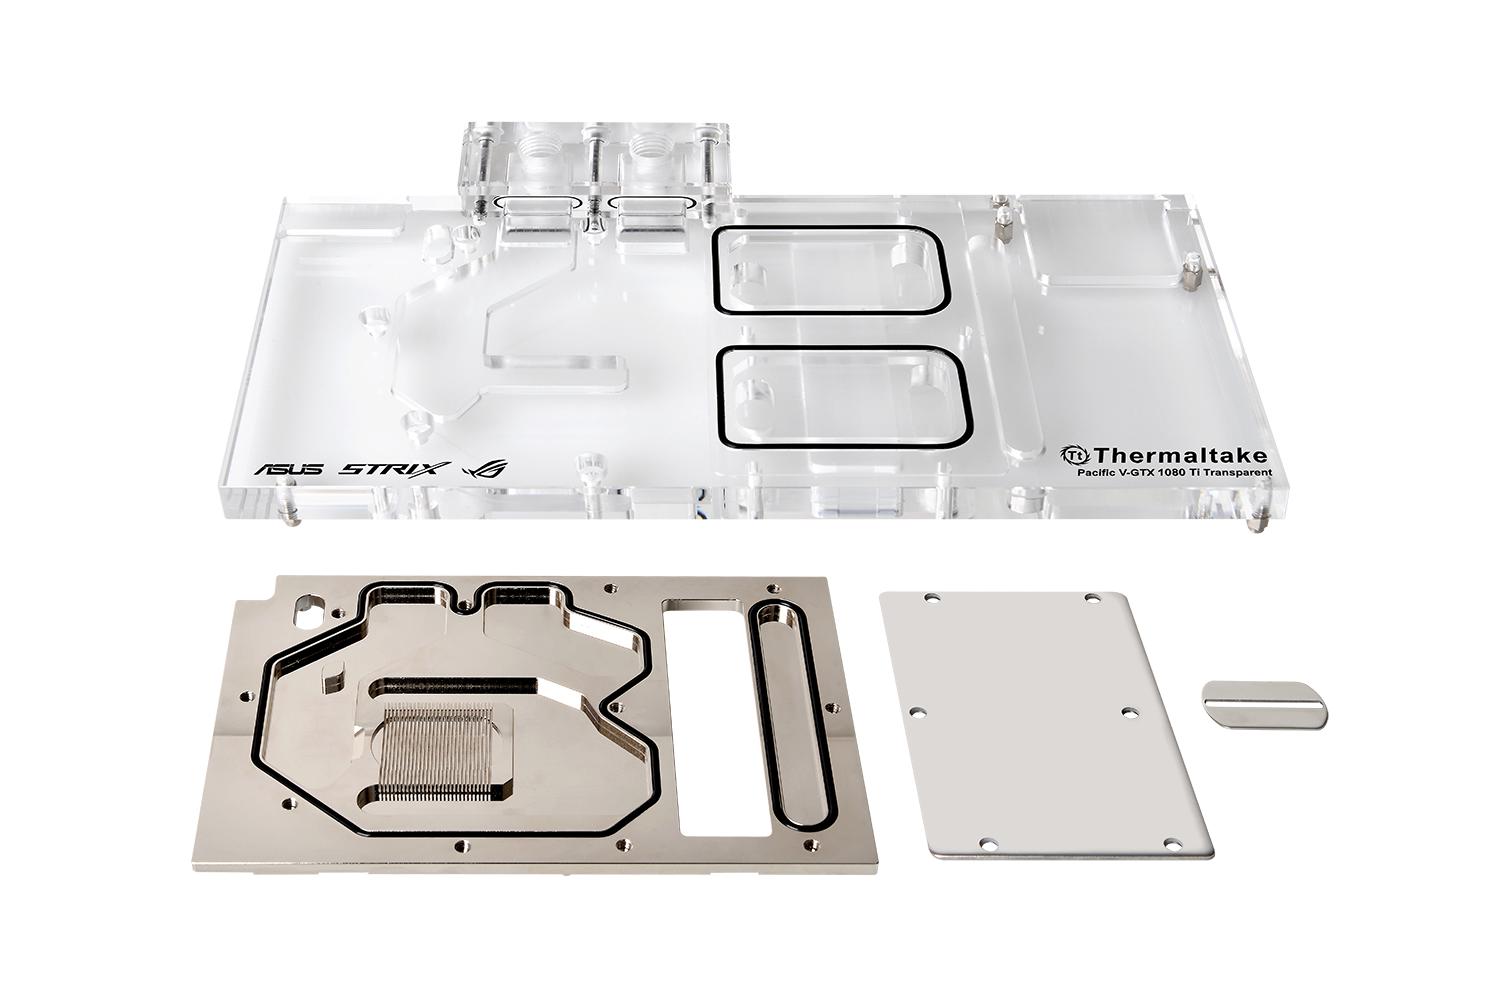 Thermaltake Pacific V-GTX 1080Ti Transparent Water Block (For ASUS ROG)_Unique Micro-Channel Structure